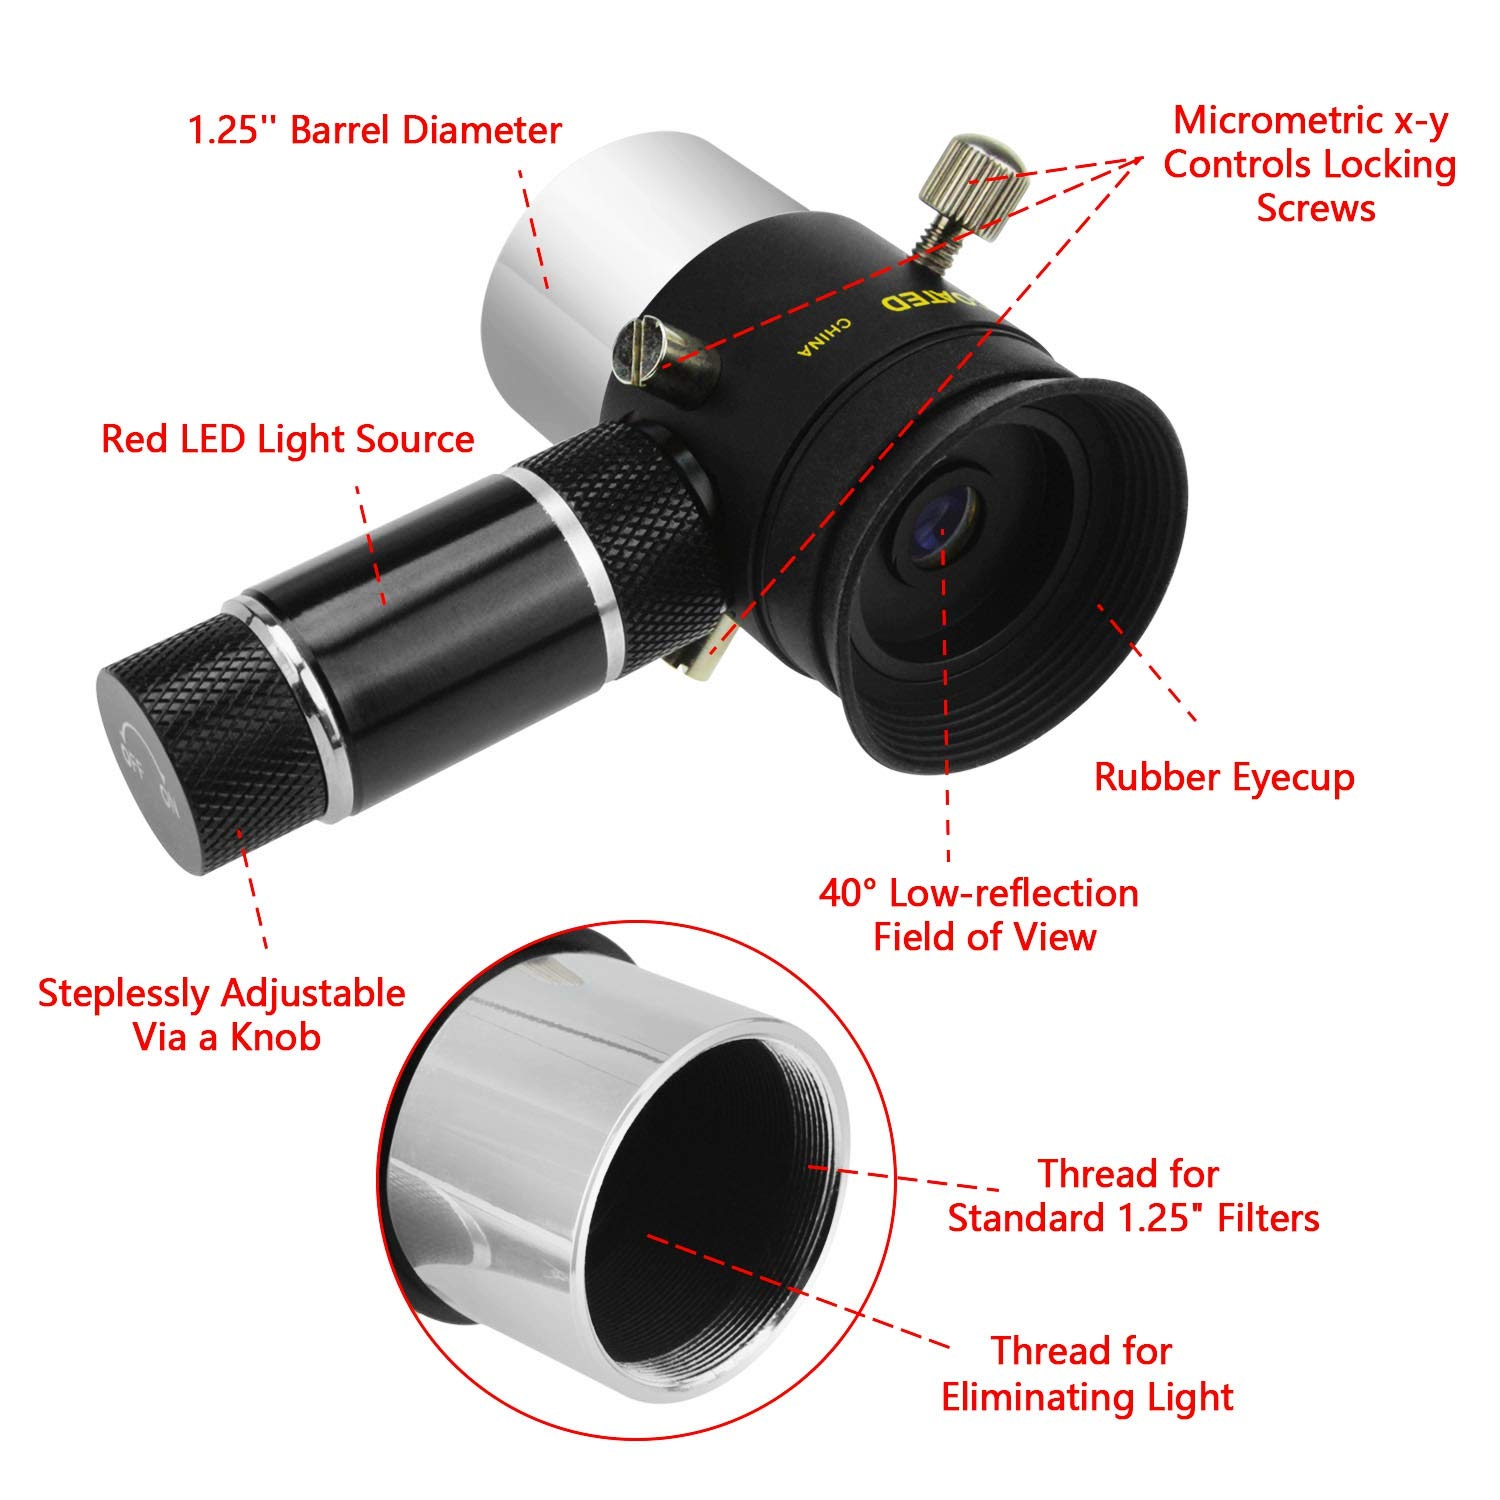 Astromania Deluxe 9mm Illuminated Crosshair Eyepiece for Perfectly Guided astrophotos Micrometric x-y Controls aid in Locking onto The Guide Star